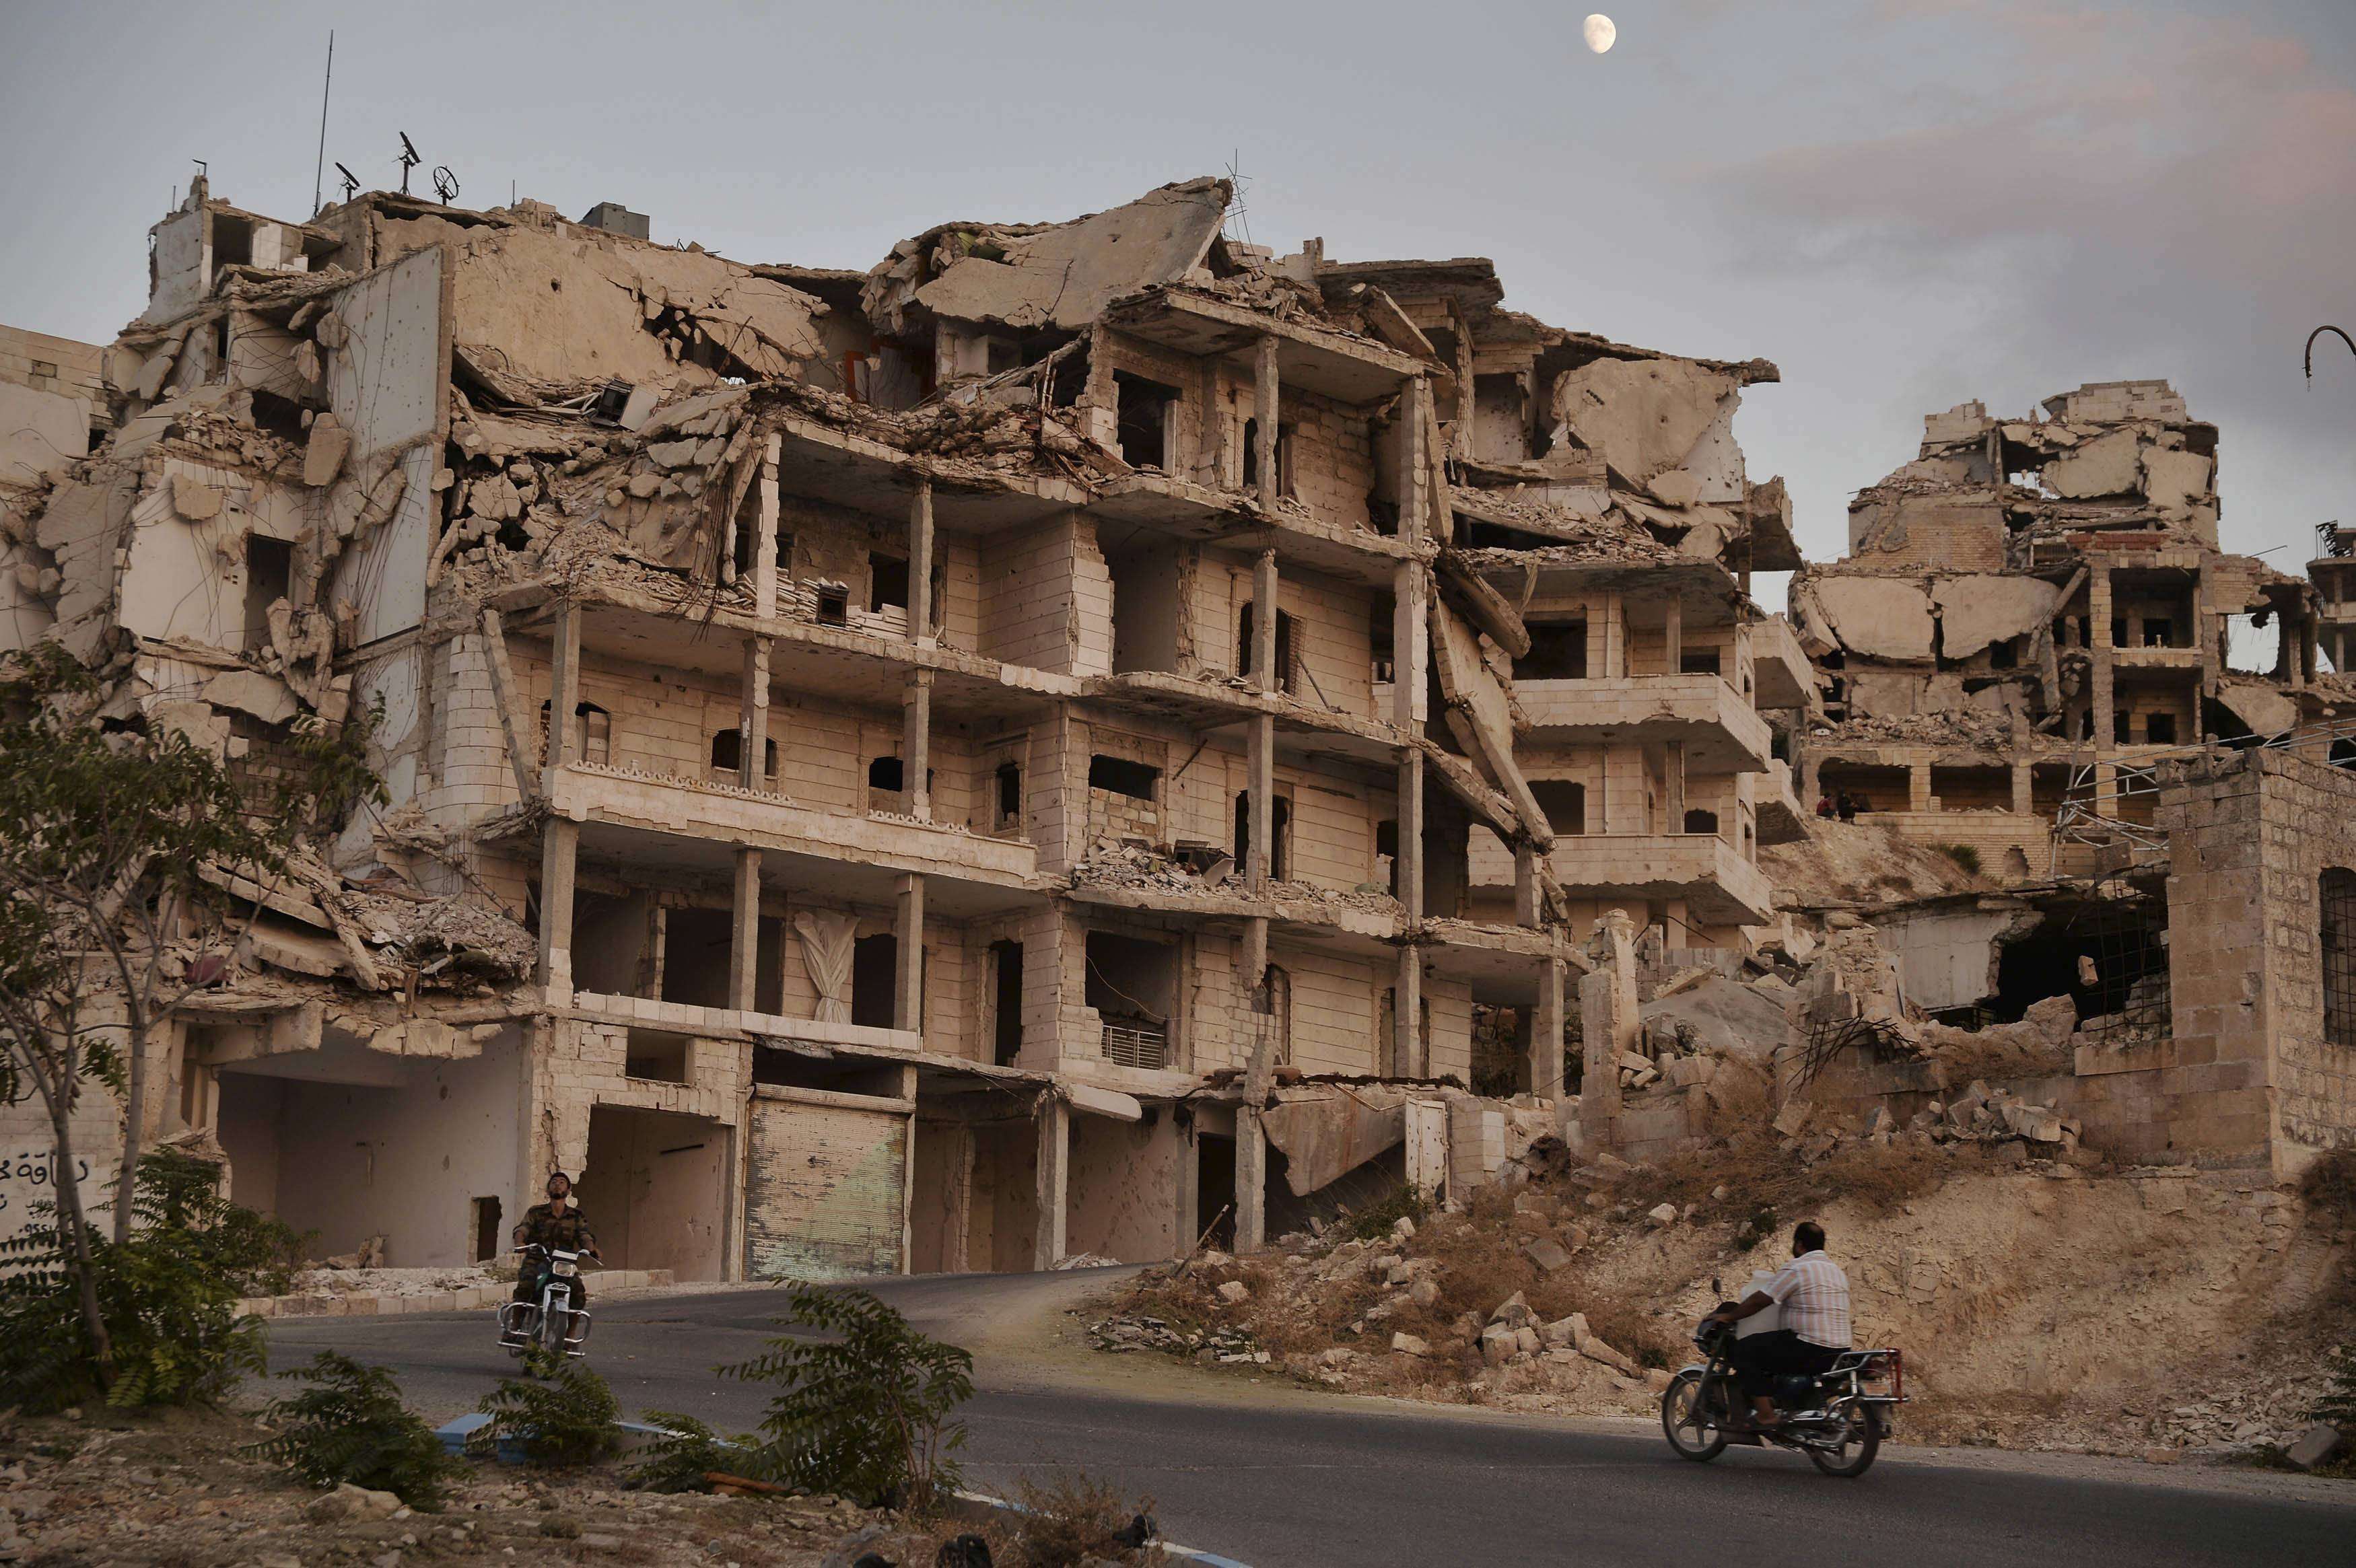 FILE - In this Sept. 20, 2018, file photo, motor cycles ride past buildings destroyed during the fighting in the northern town of Ariha in Idlib province, Syria. As world leaders talk peace at the U.N. this week, the Syrian region of Idlib clings to fragile hope that diplomacy will help avert a blowout battle over the country's last rebel stronghold. (Ugur Can/DHA via AP, File)